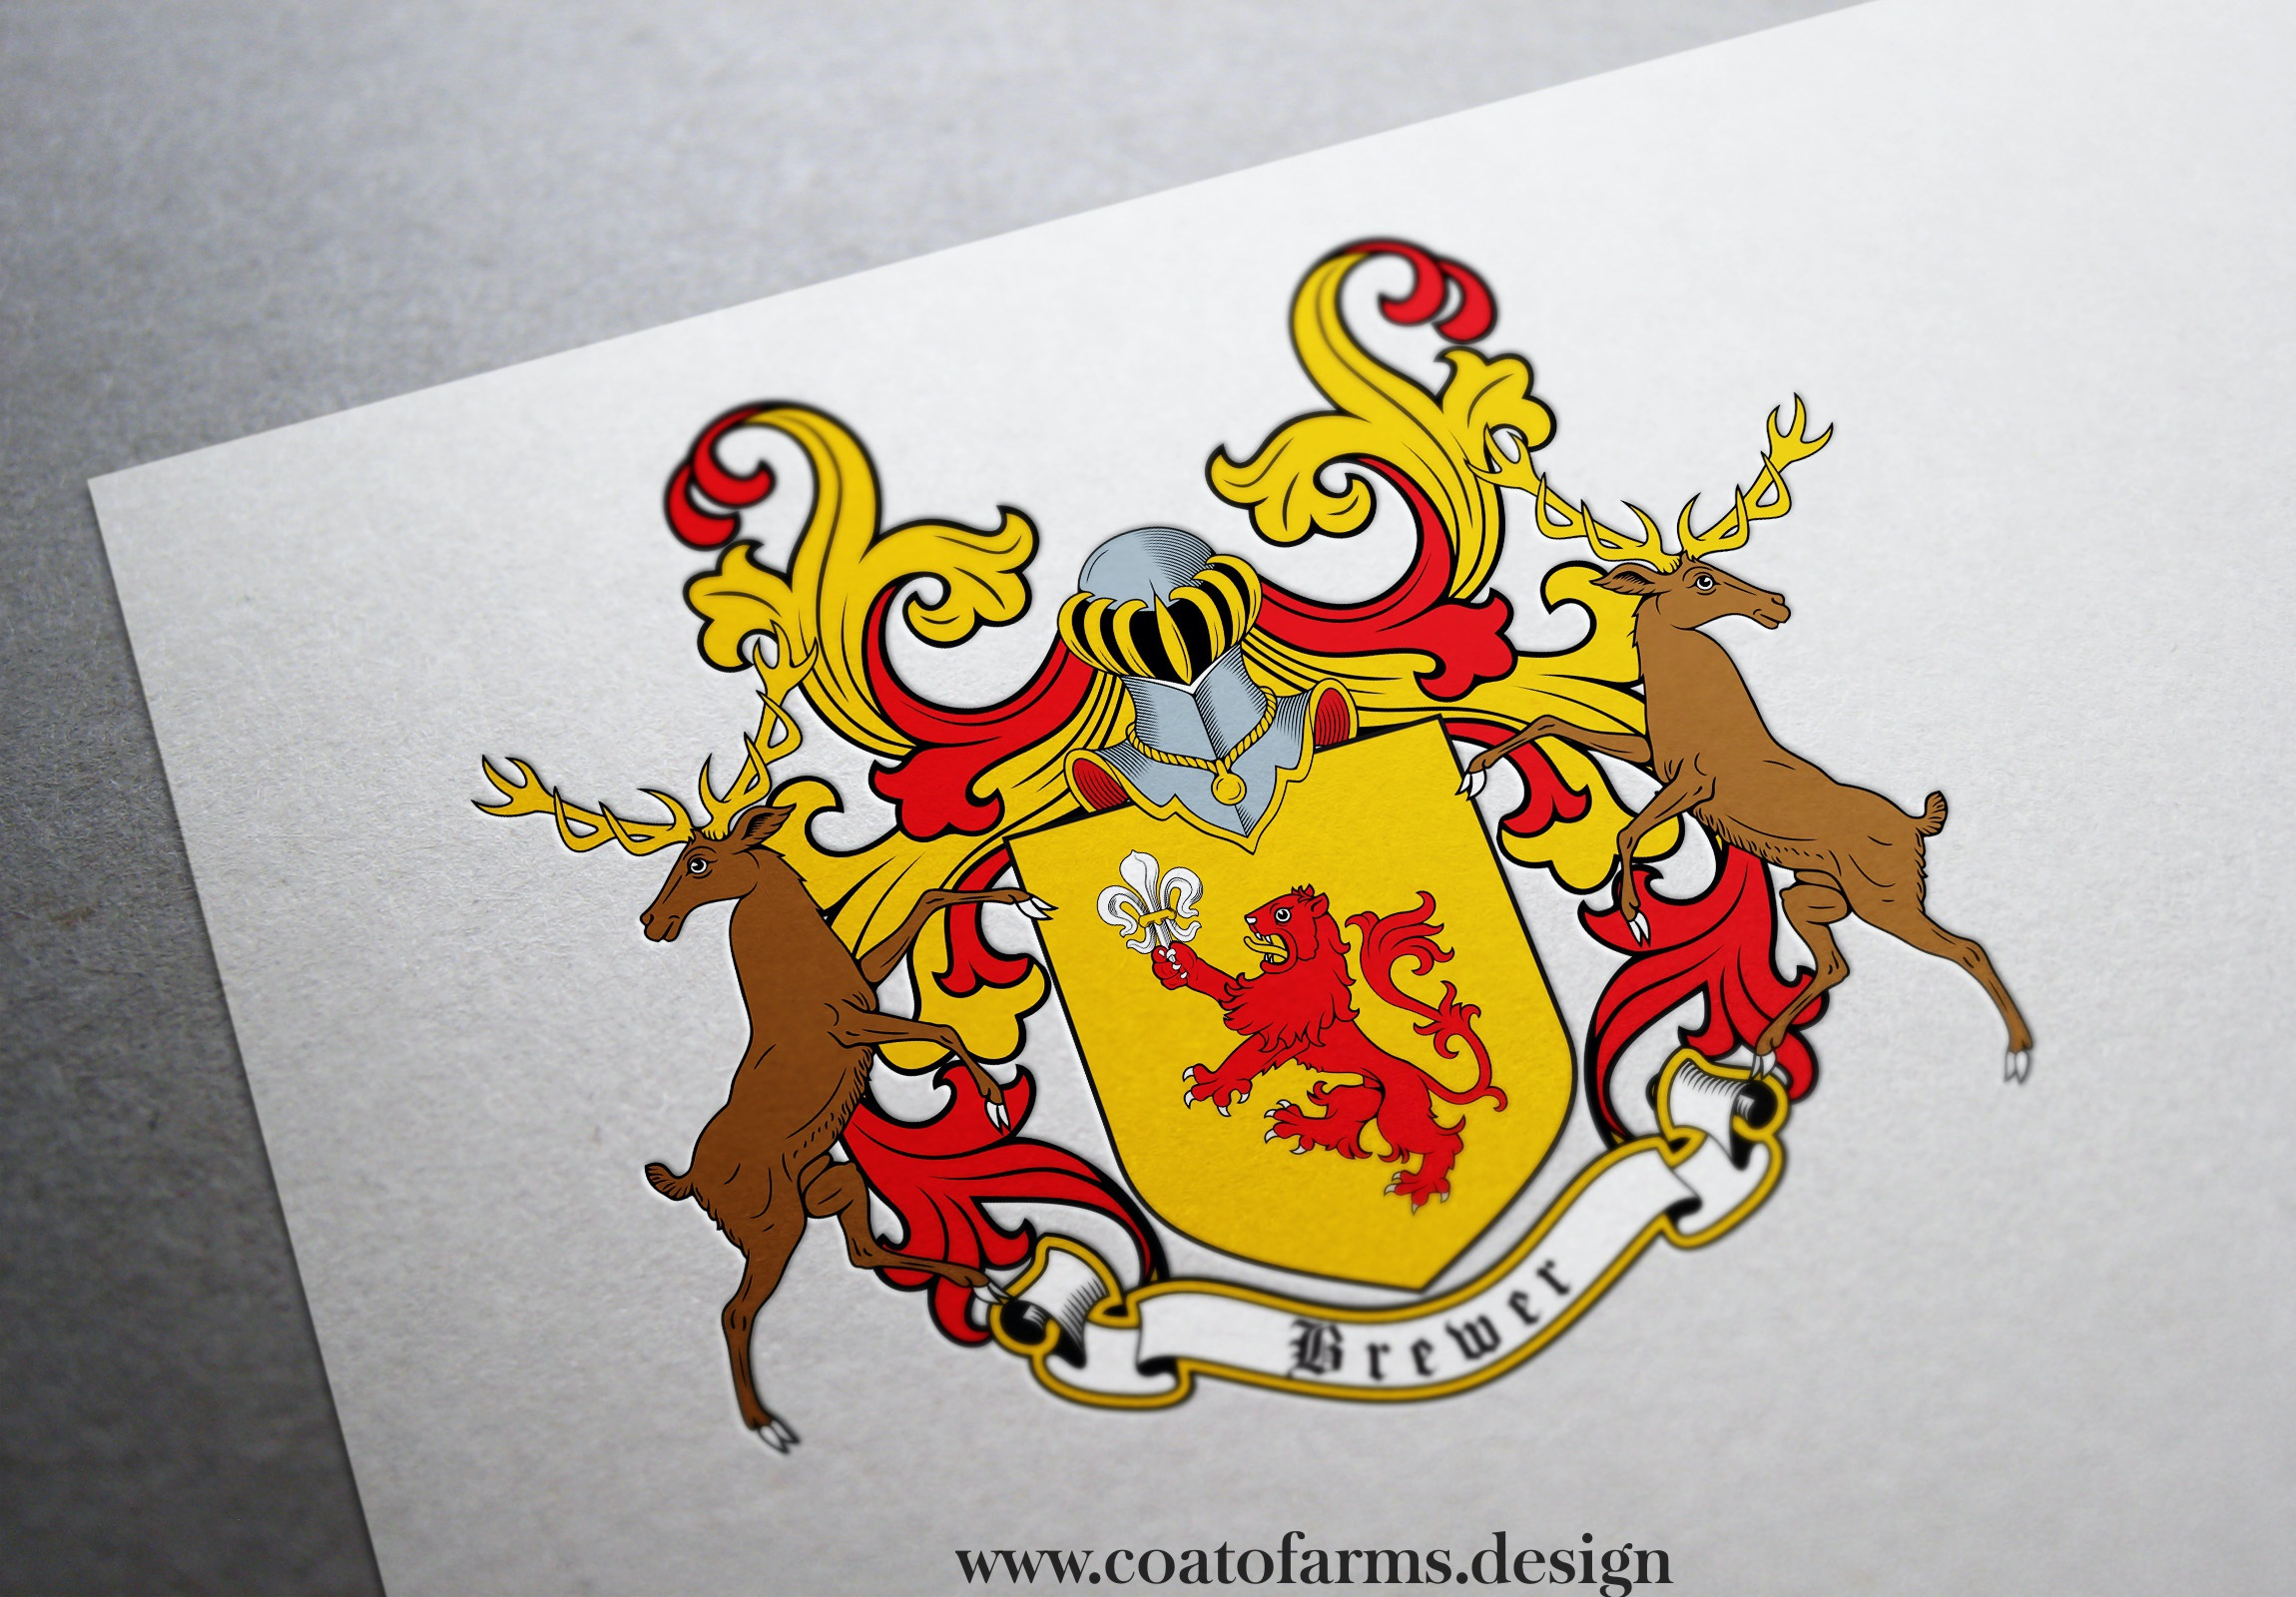 Coat of arms I designed for a Brewer family USA